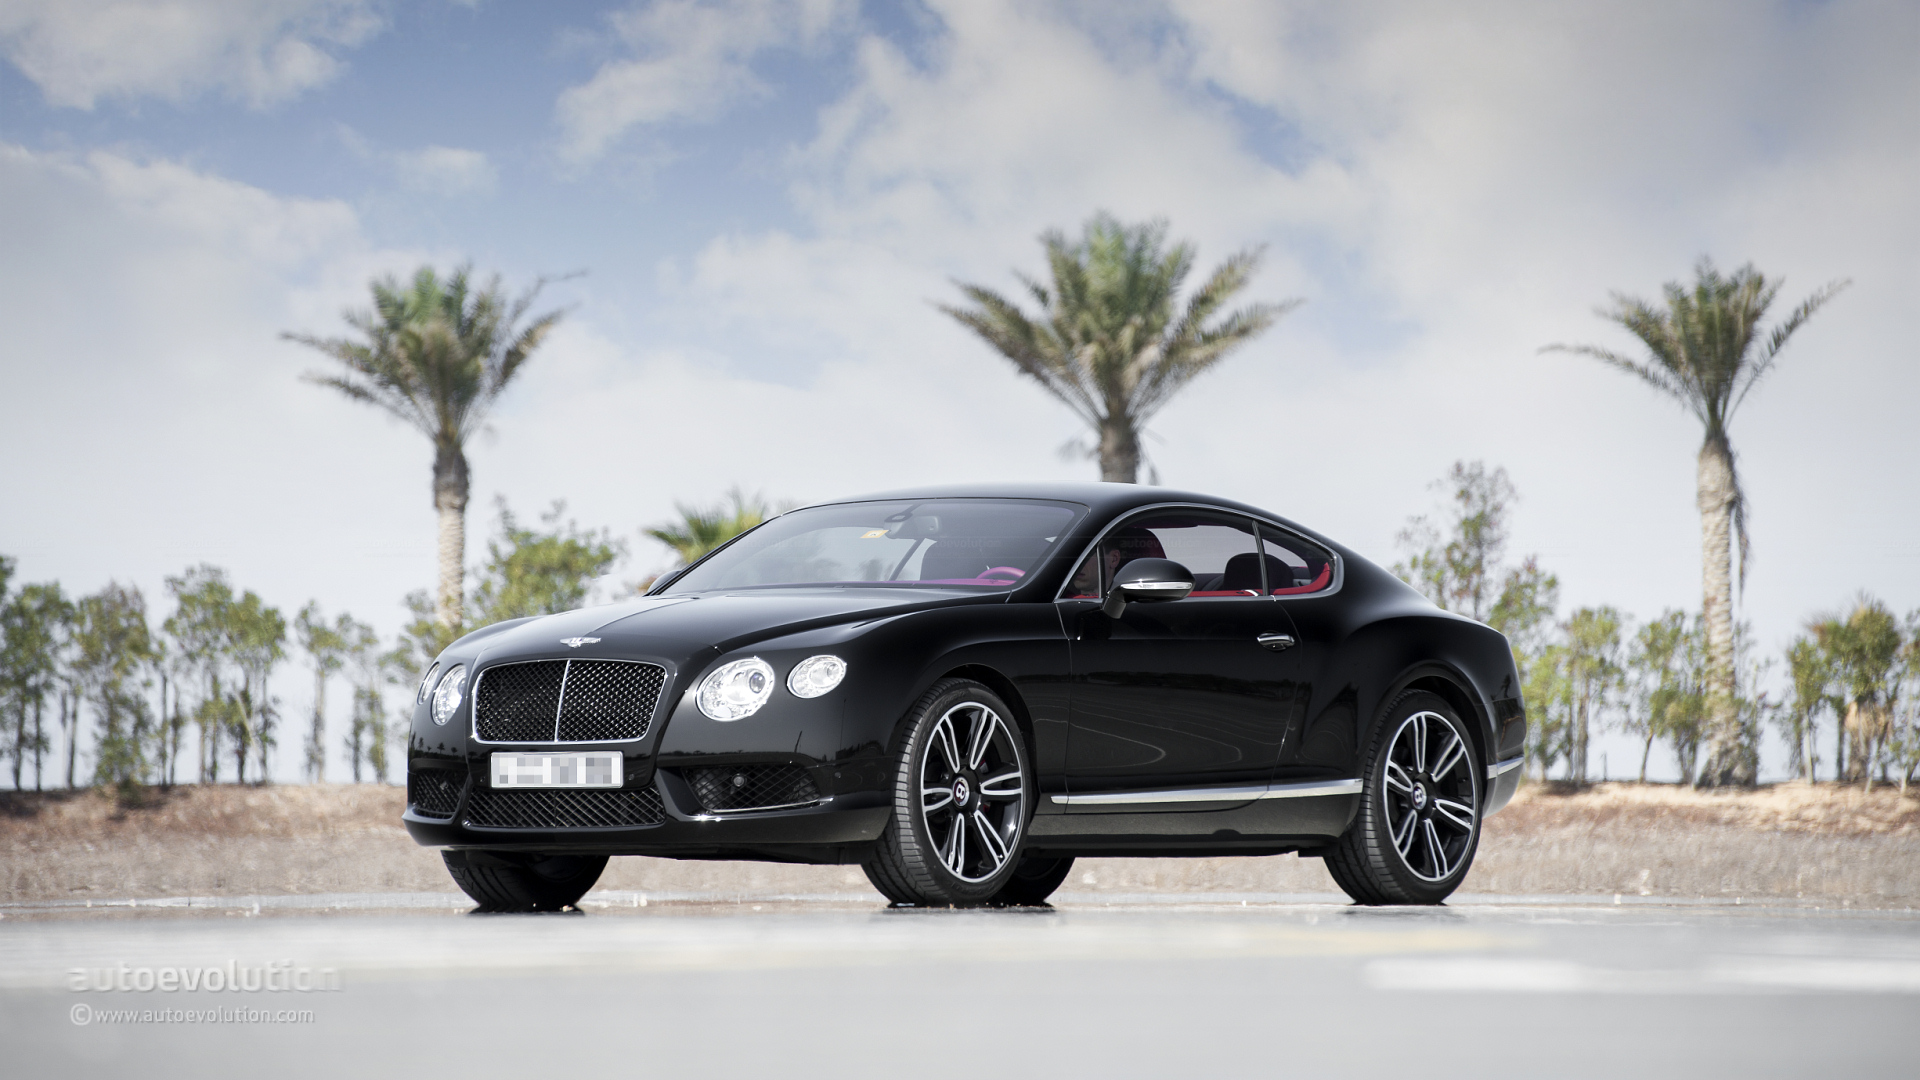 Bentley continental gt w12 review autoevolution - Bentley Continental Gt W12 Review Autoevolution 3